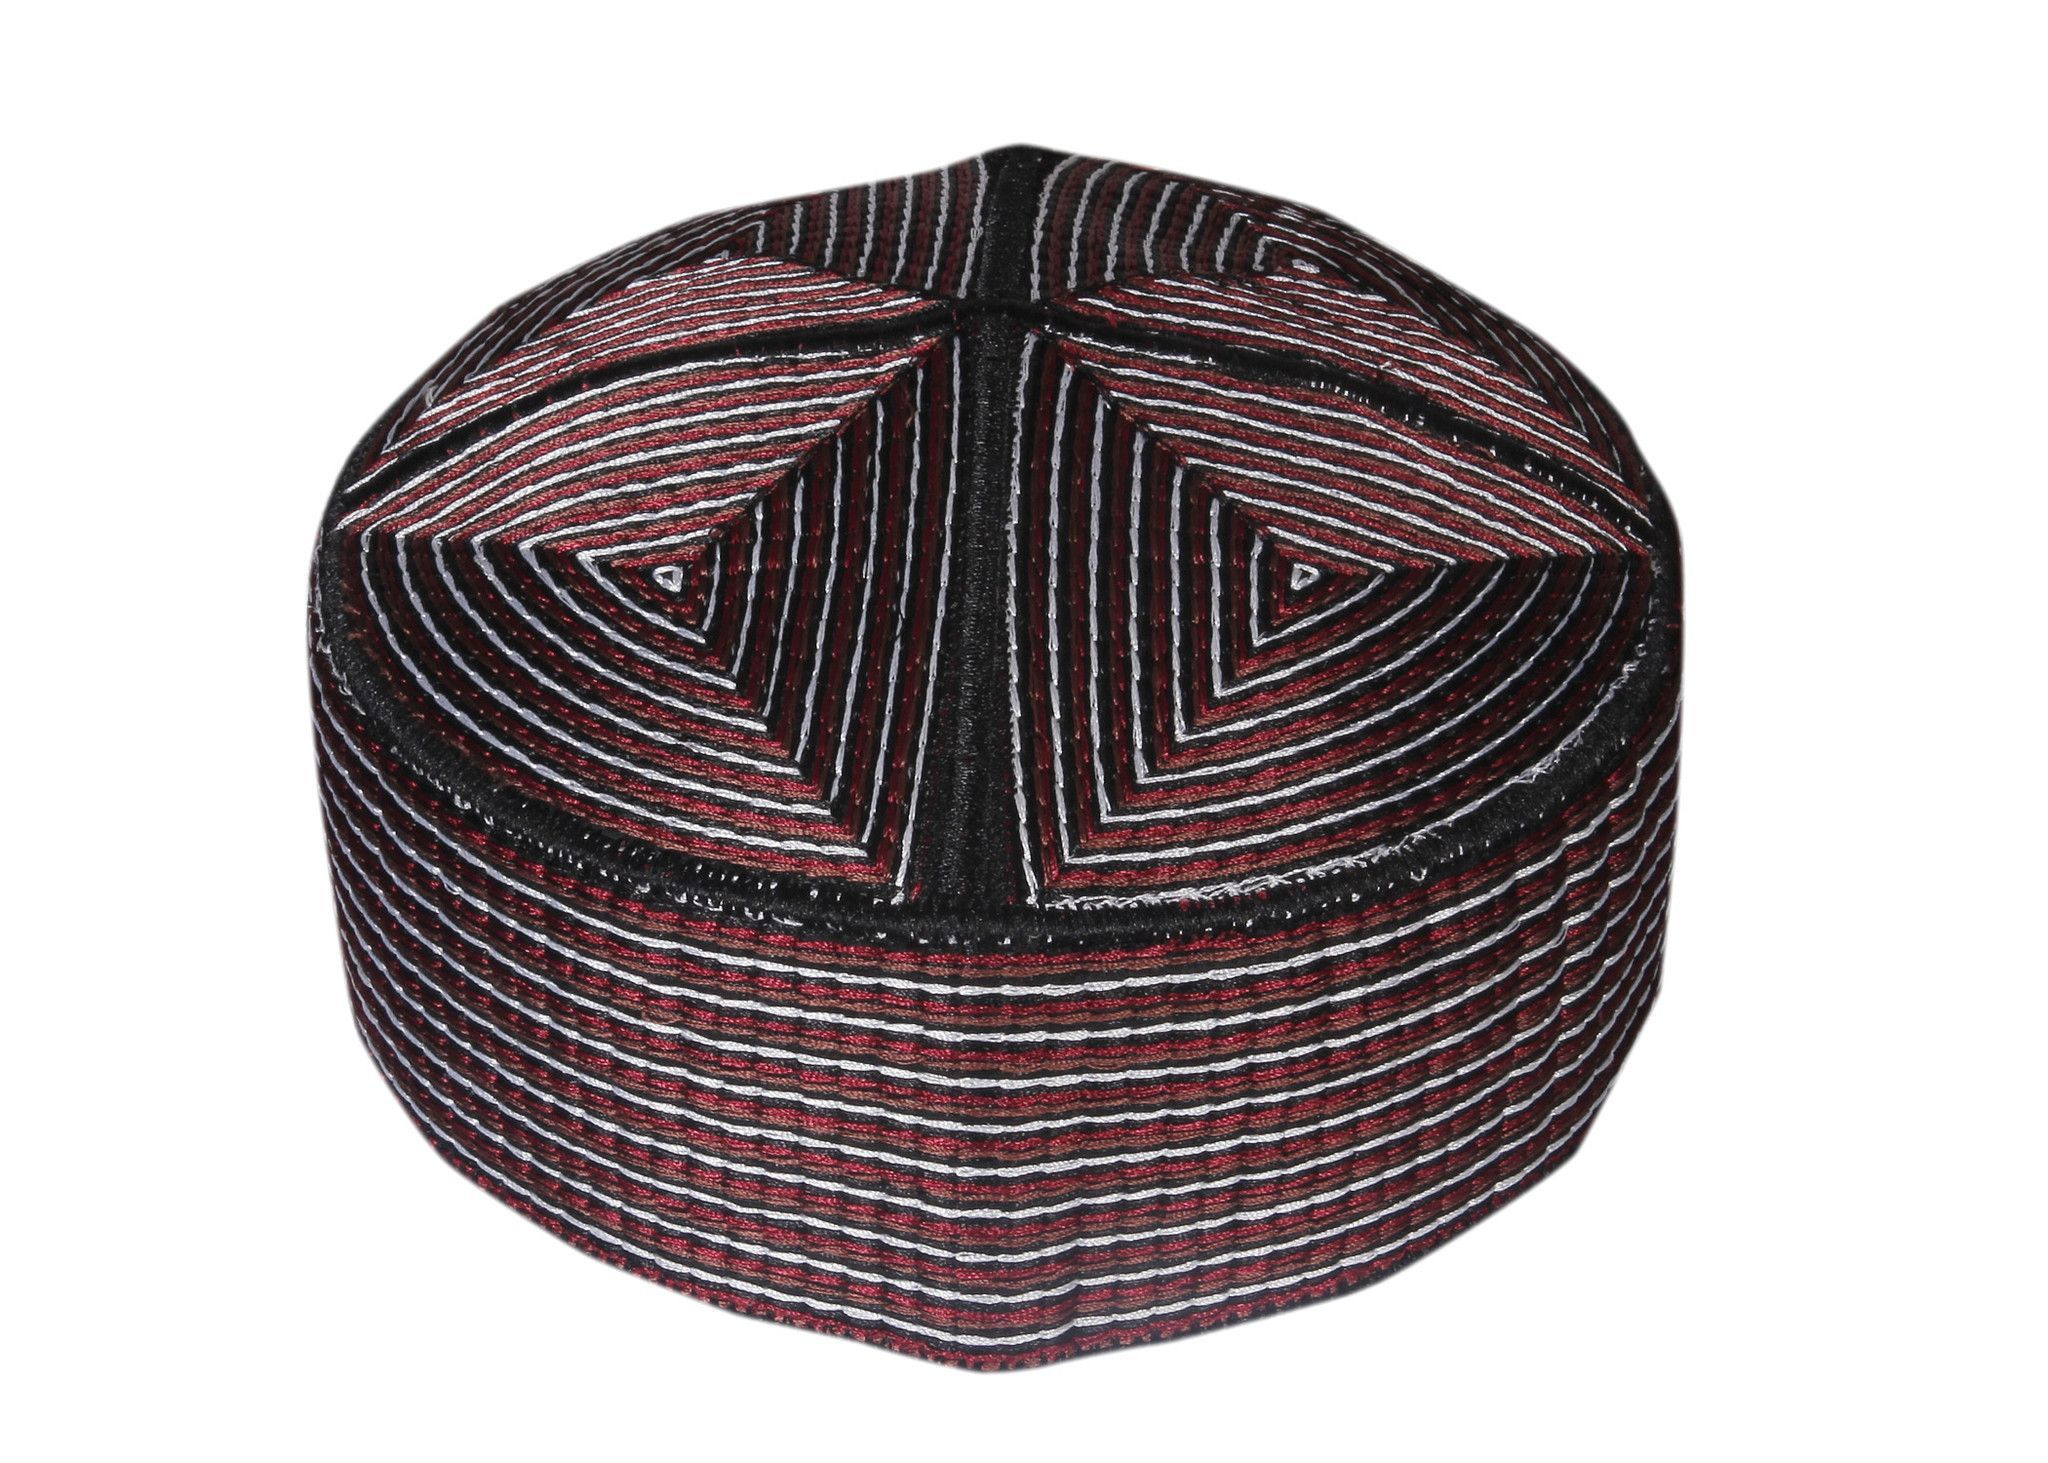 Muslim Prayer Cap of Balochi Design with Maroon Threads